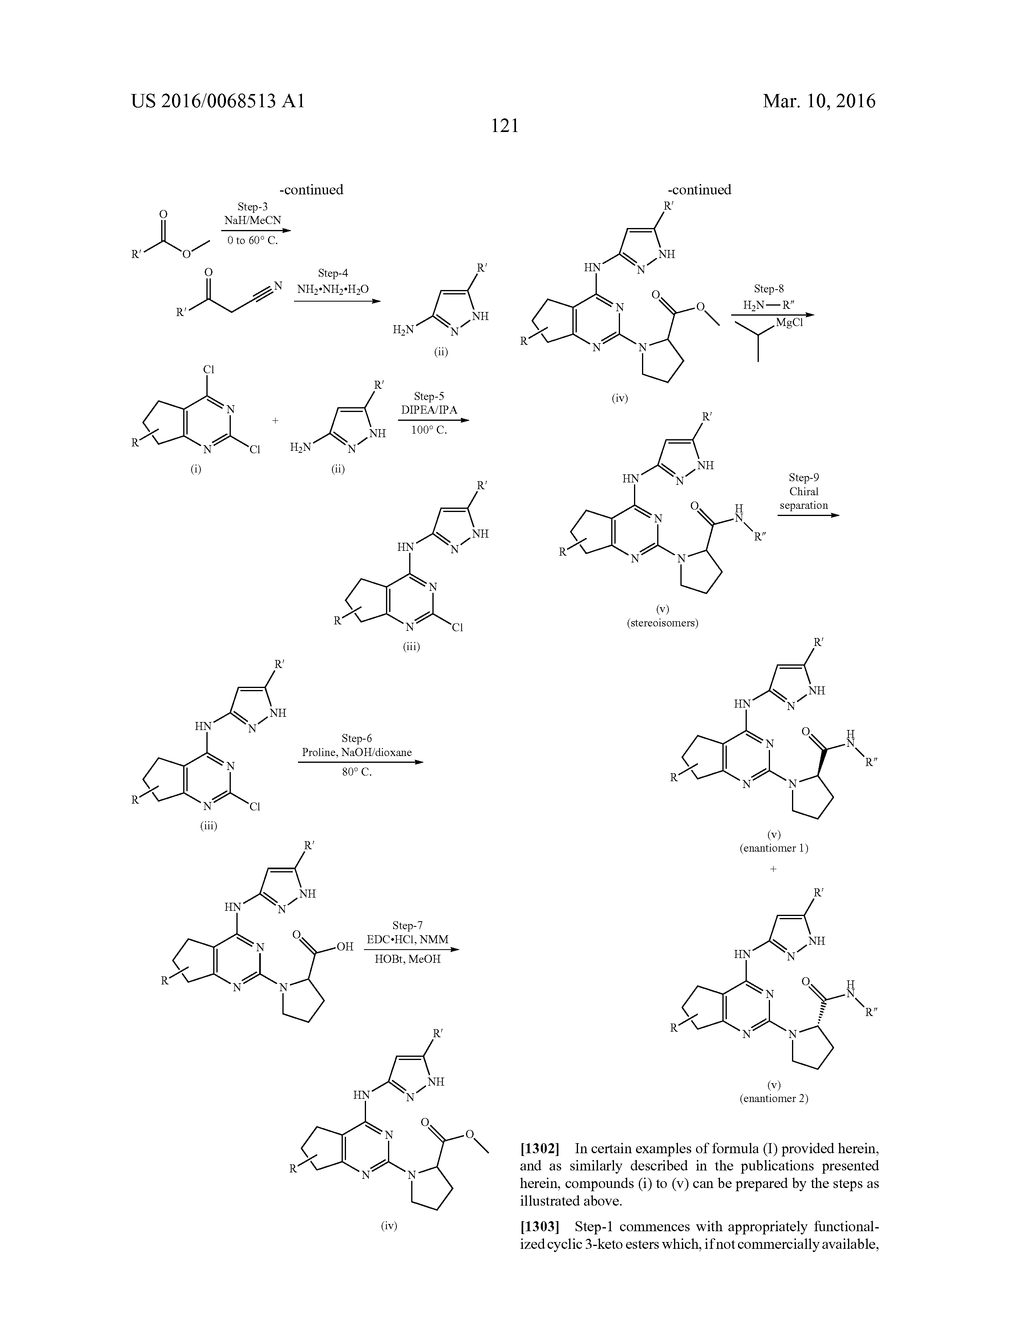 FUSED PYRIMIDINE COMPOUNDS AND USE THEREOF - diagram, schematic, and image 126